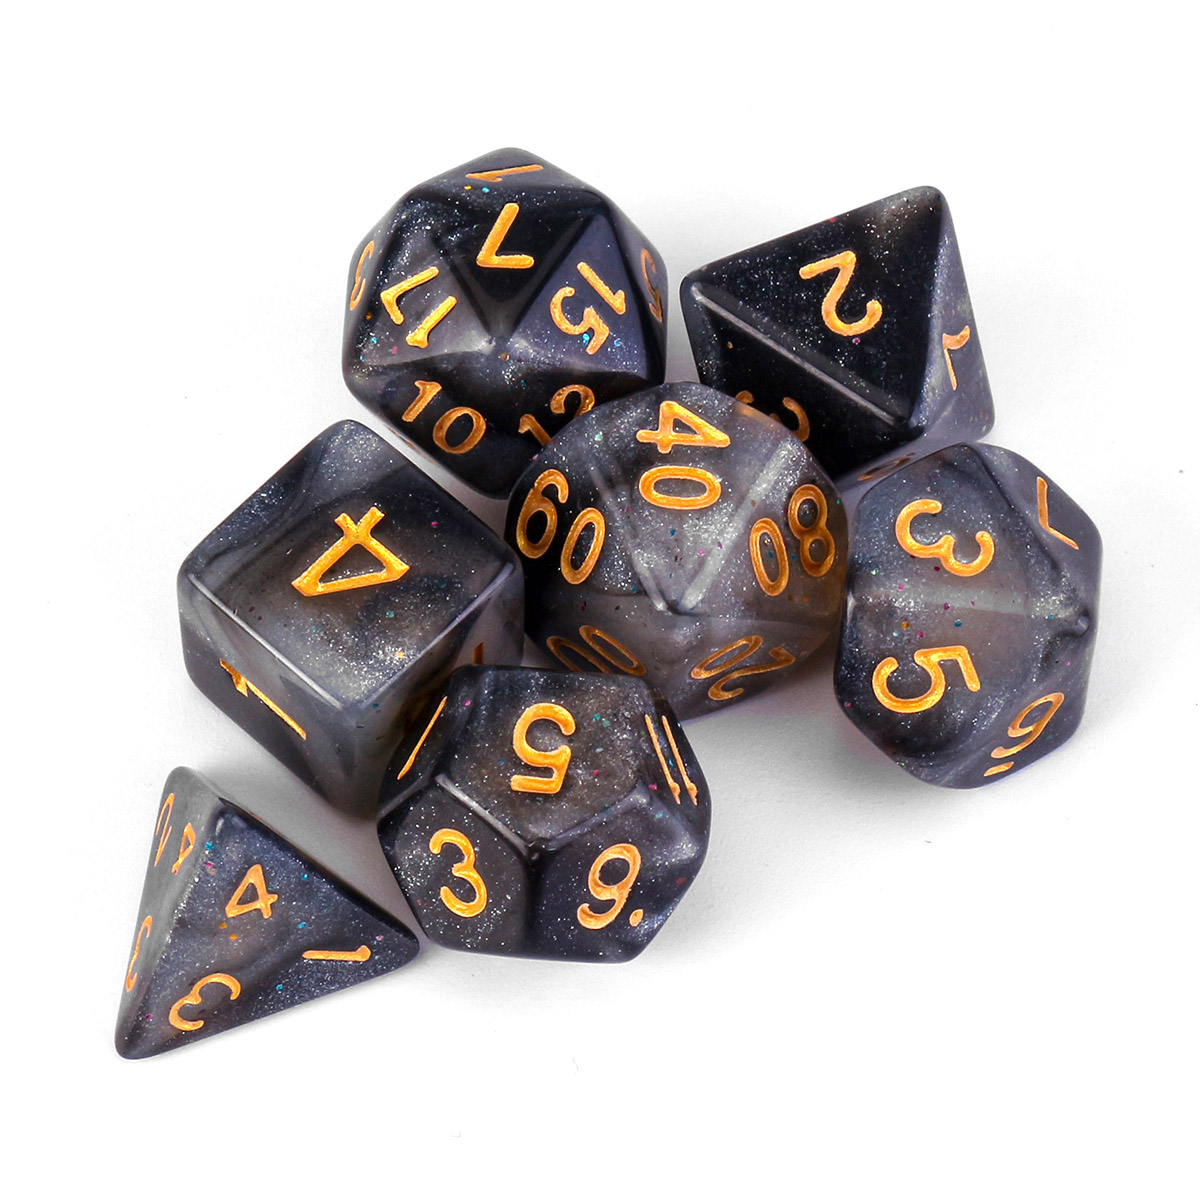 HB HN 10Pcs Multi-sided TRPG Game Dungeons Dragons D10 Polyhedral Dice Party P